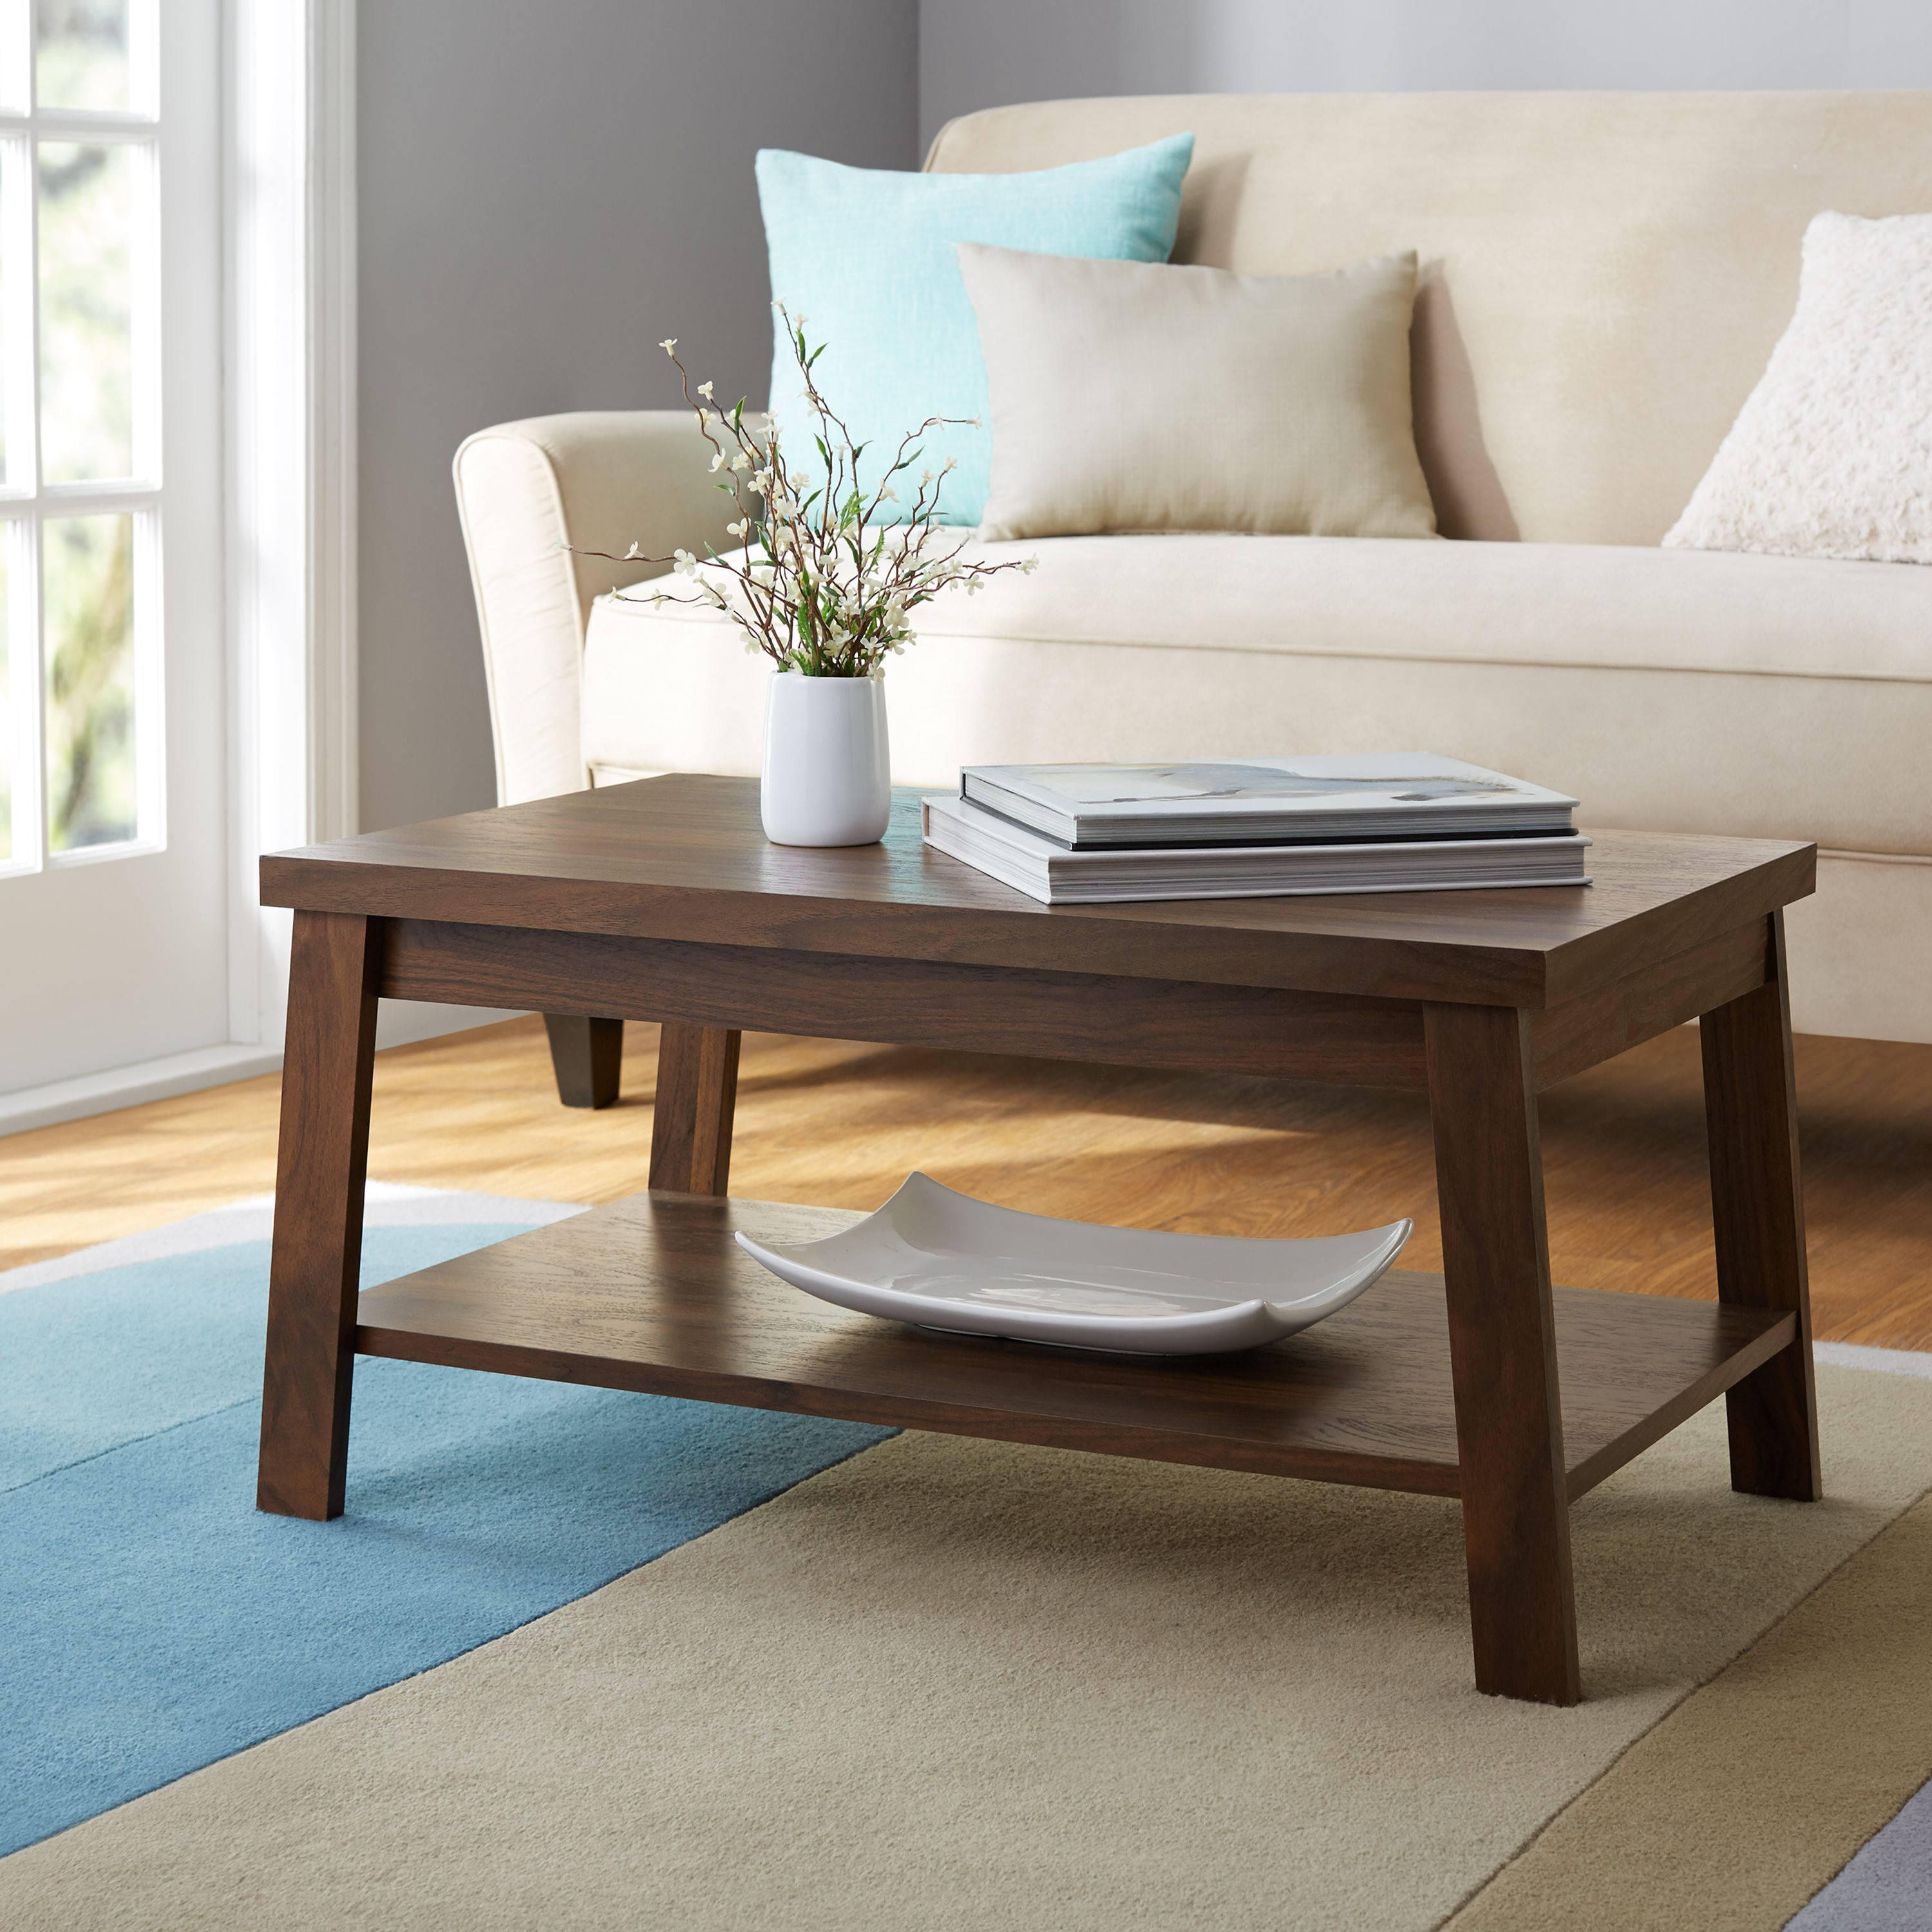 Coffee Table Fresh at Photo of Modern